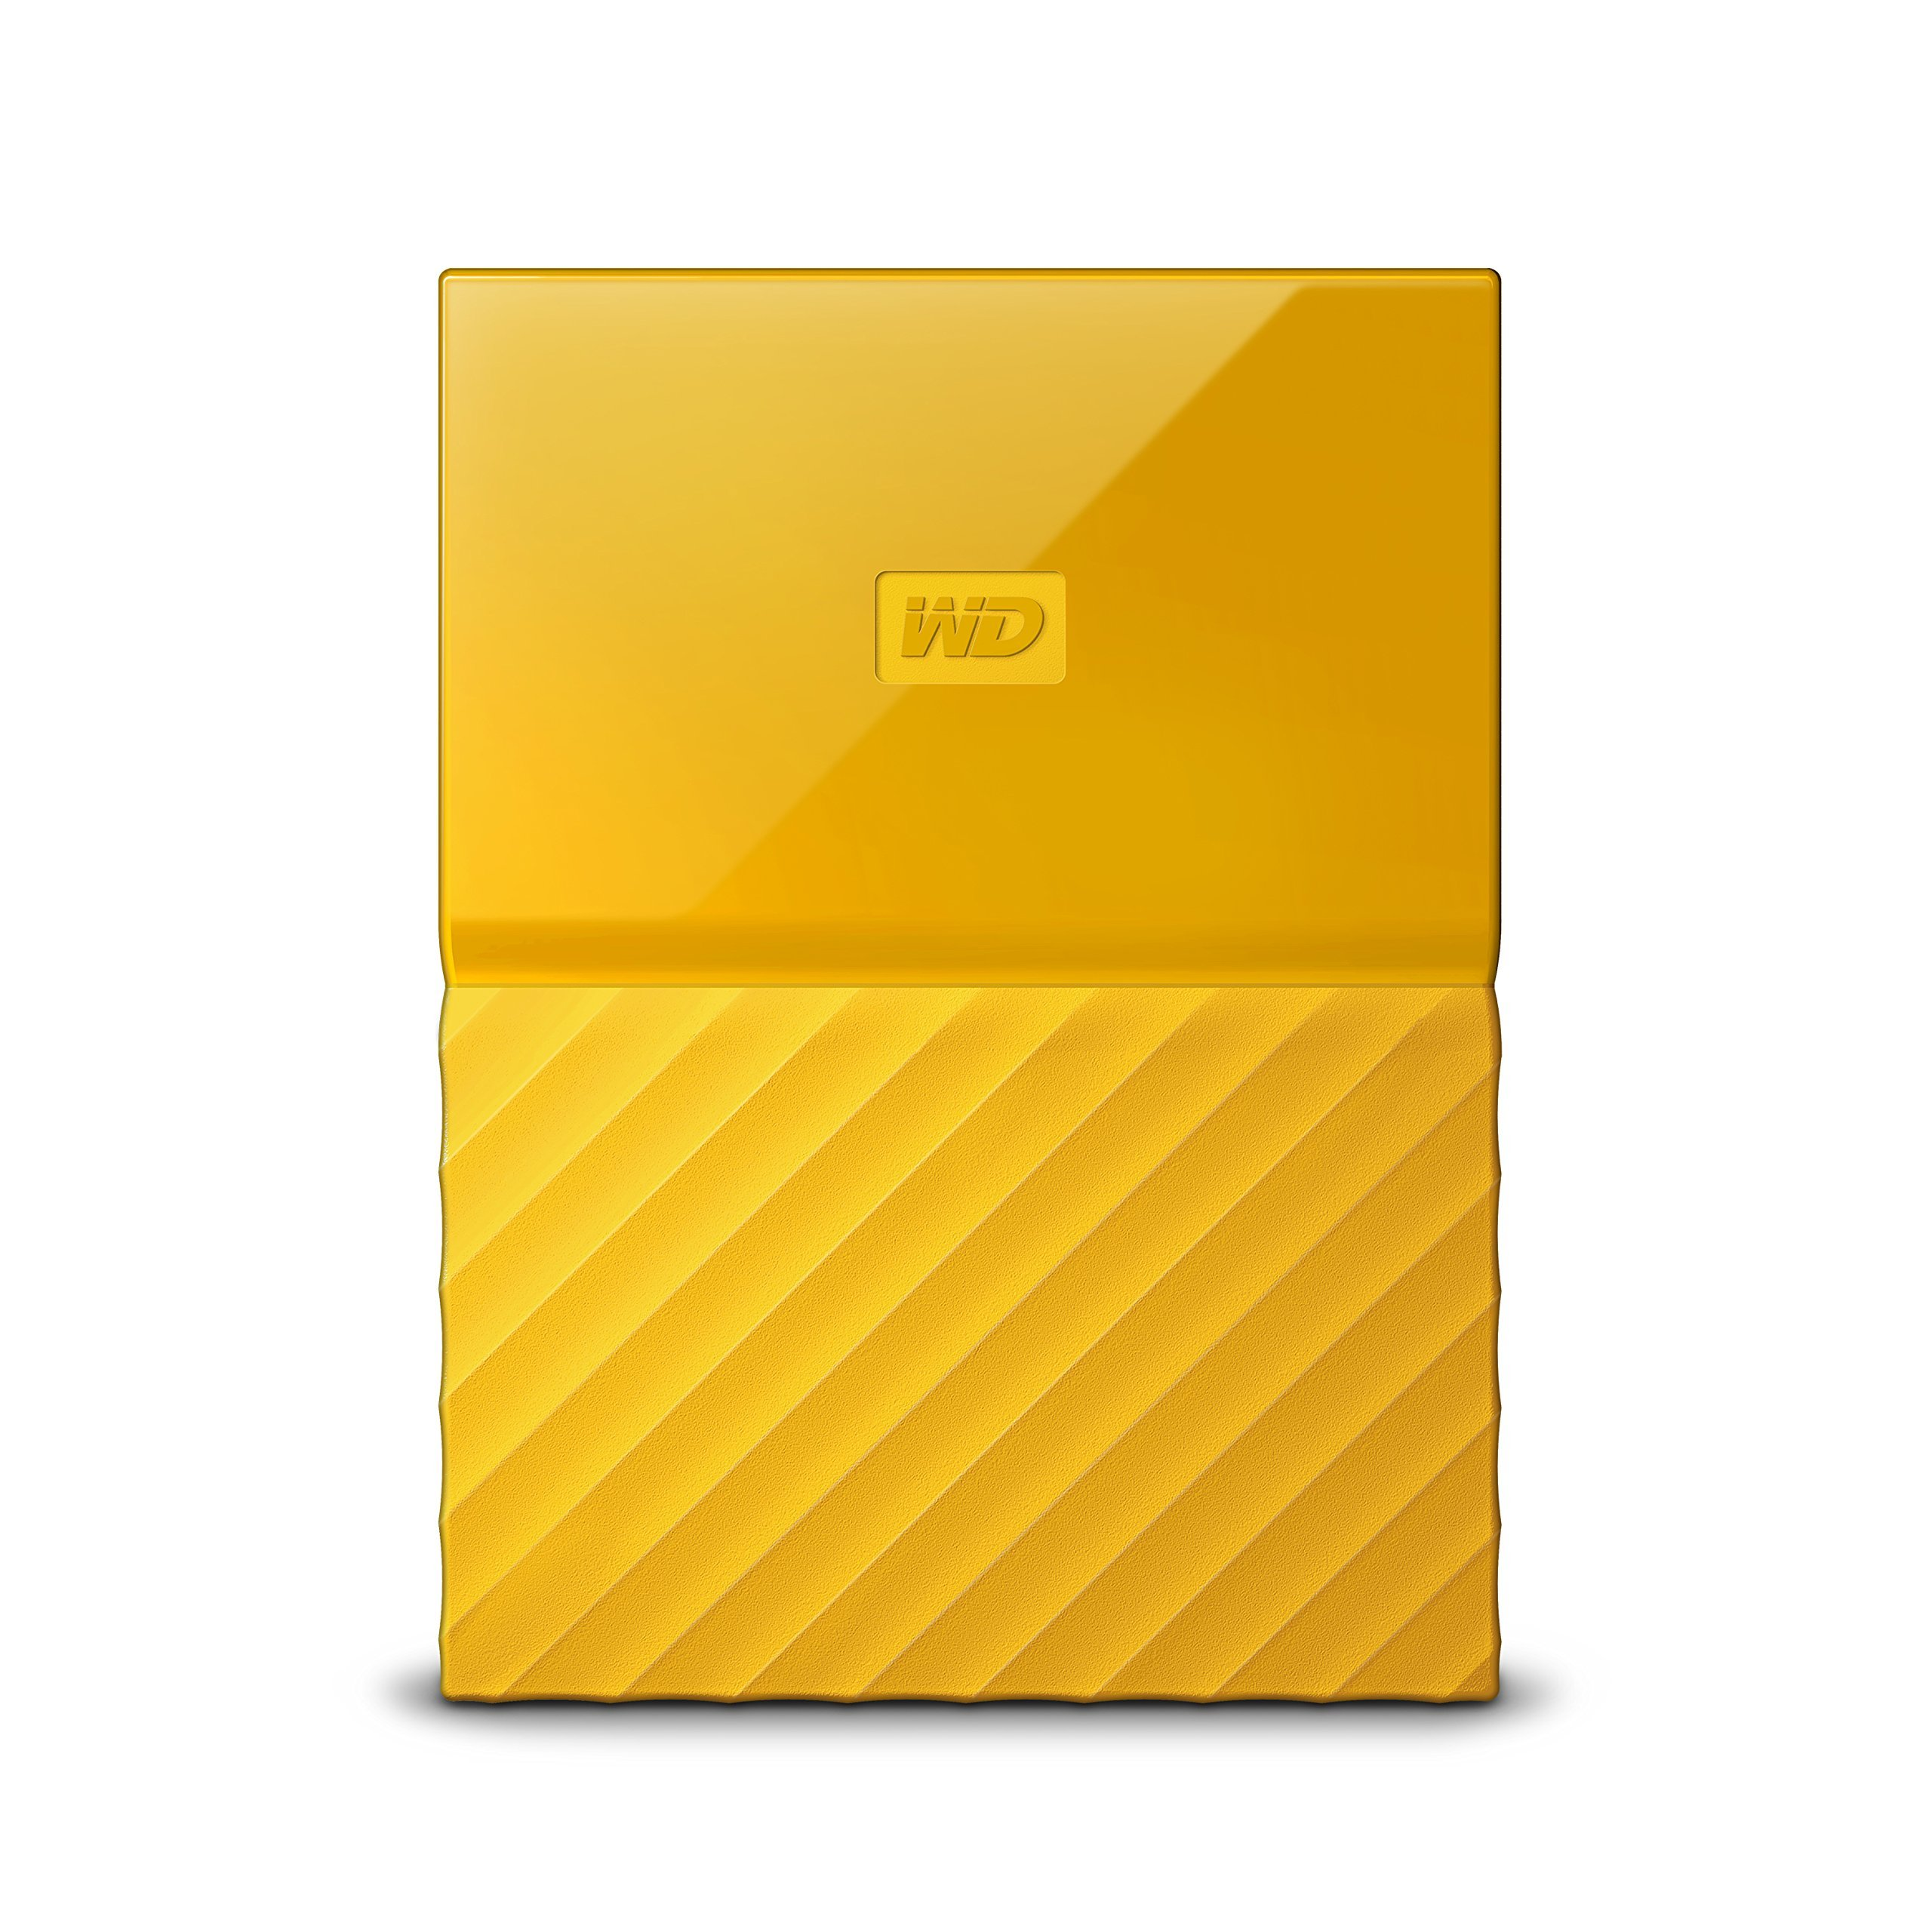 WD 2TB Yellow My Passport  Portable External Hard Drive - USB 3.0 - WDBYFT0020BYL-WESN (Certified Refurbished)